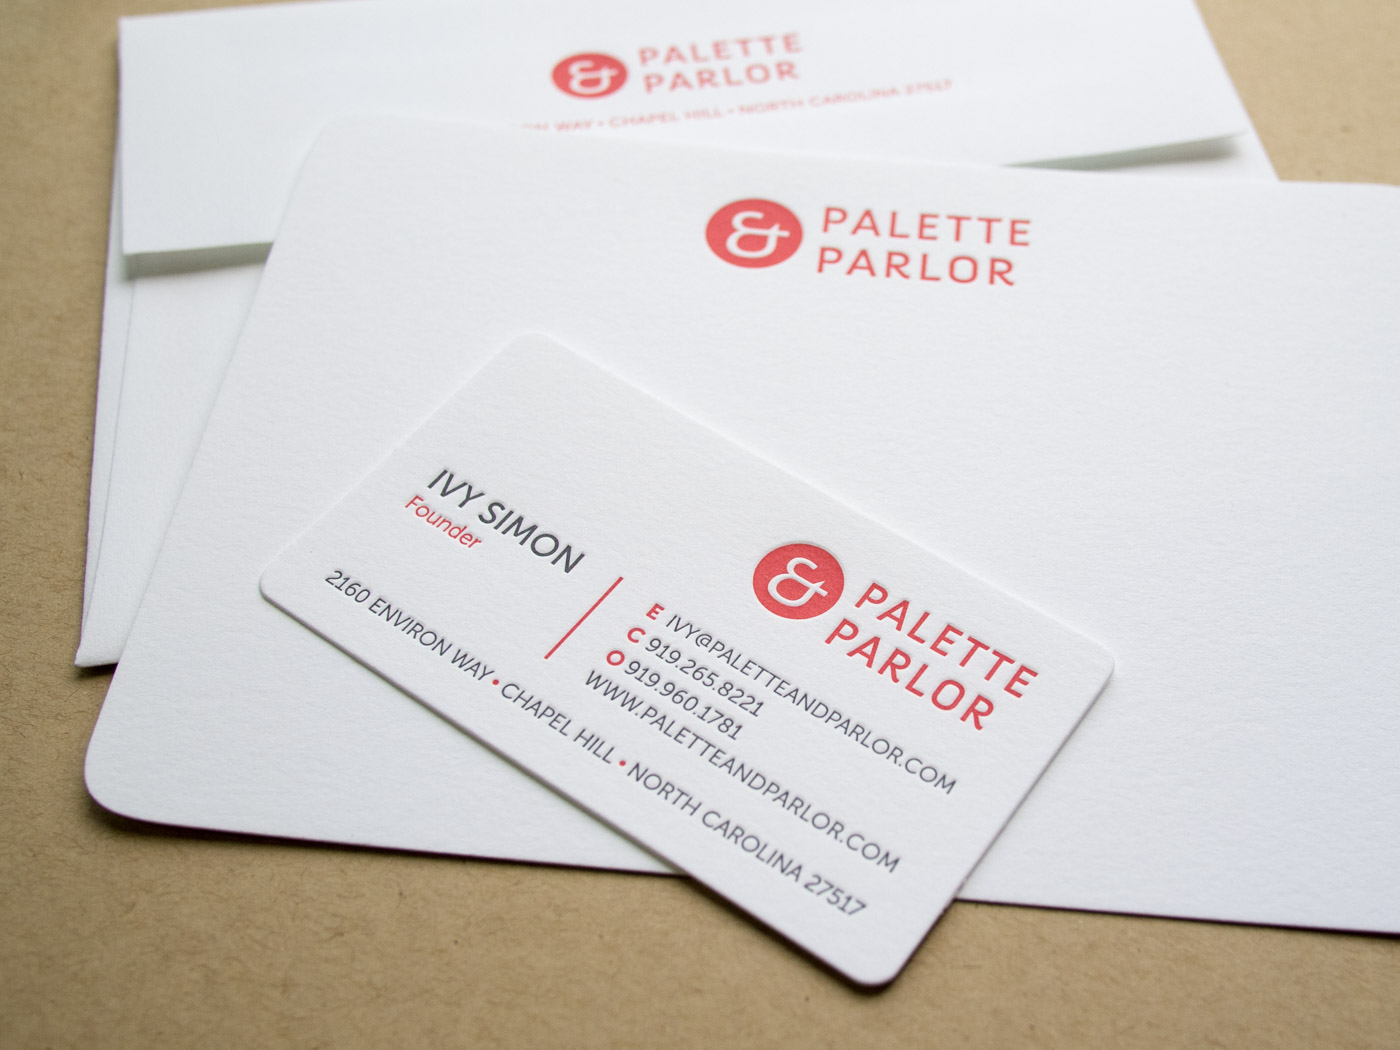 Palette and Parlor | Printed by Parklife Press